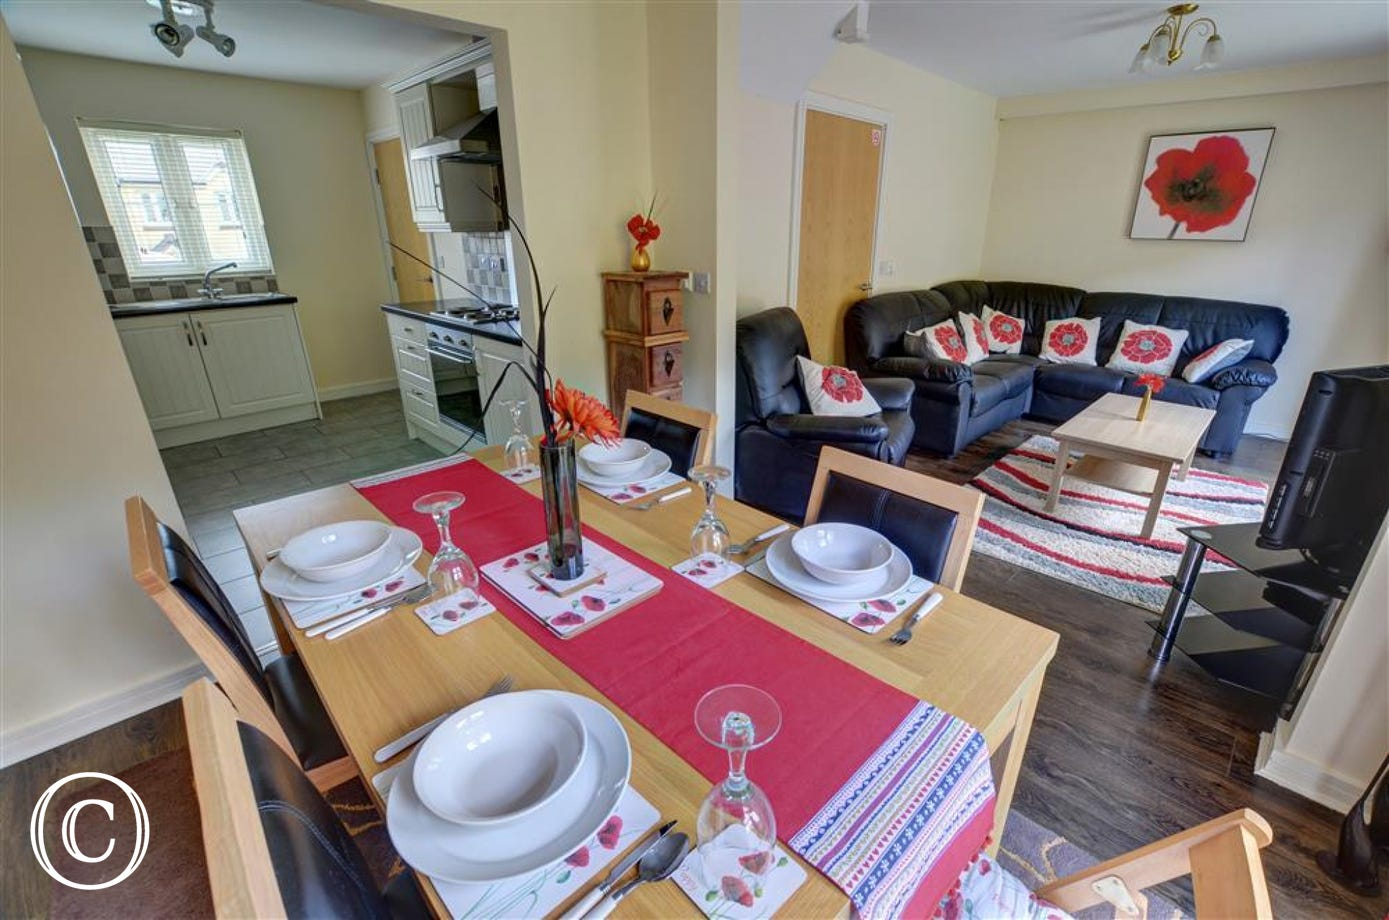 Comfortable leather seating at one end and dining table at the other, leading through to the kitchen